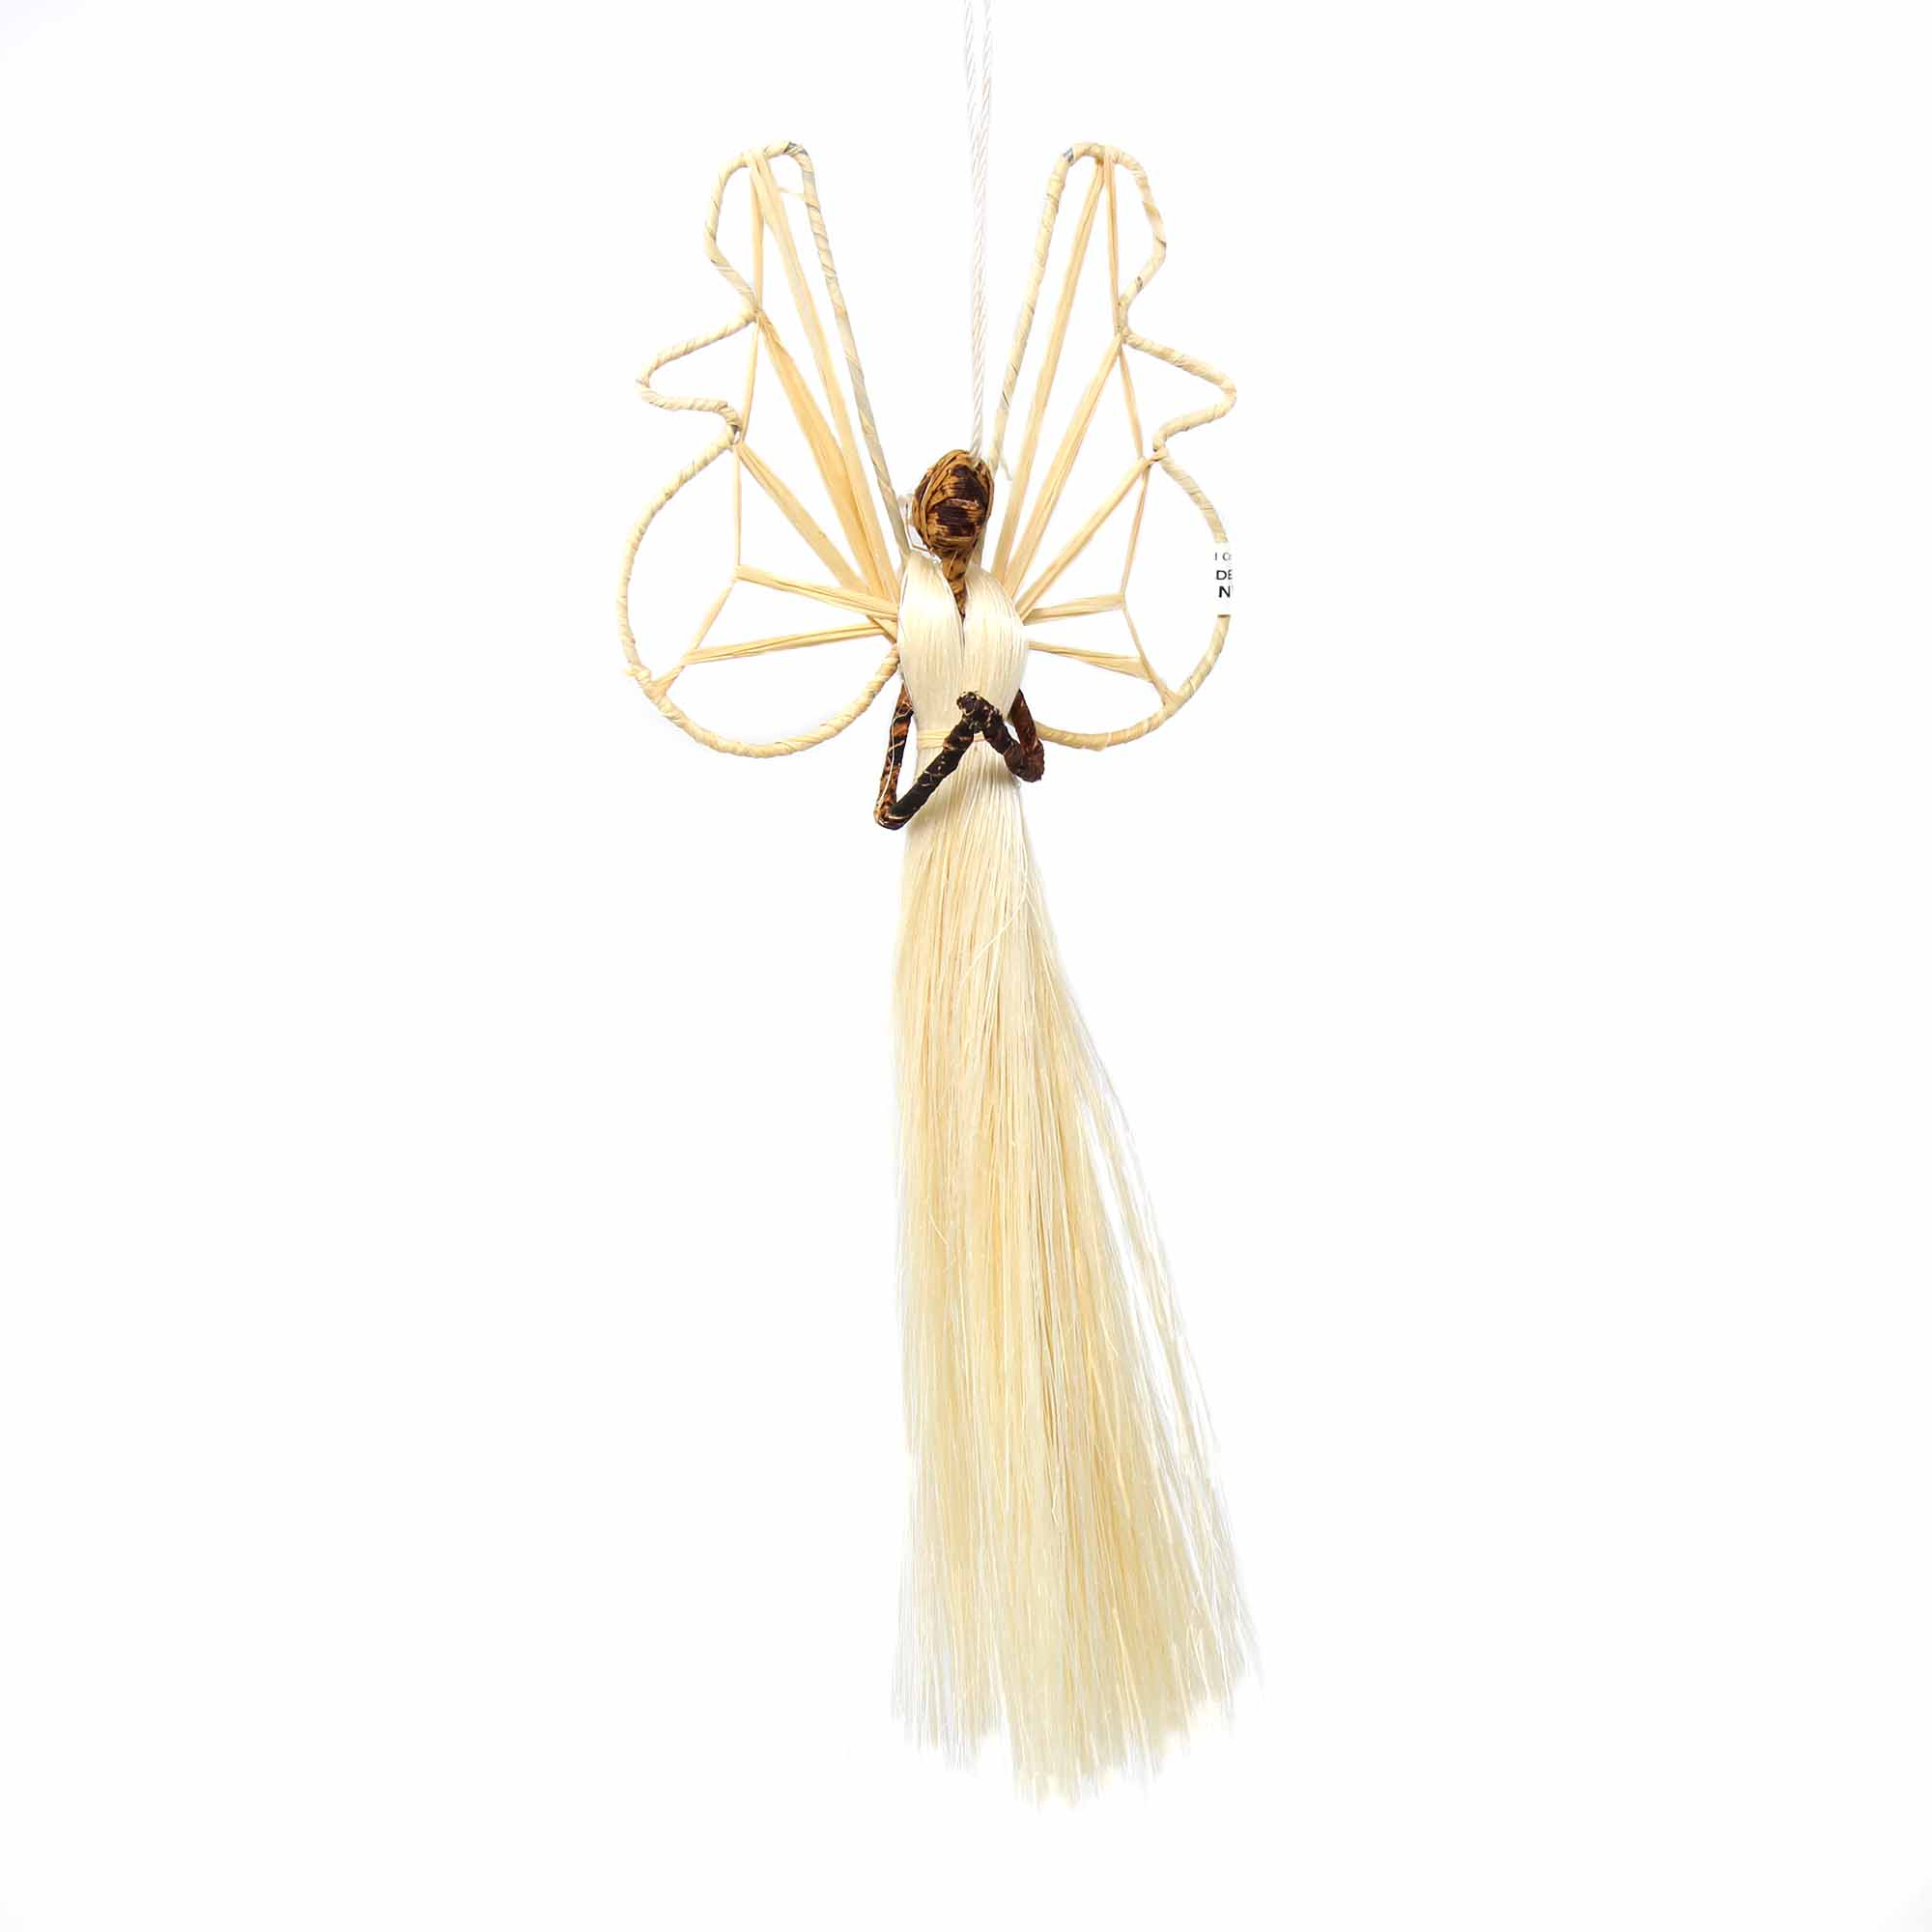 9 Inch Sisal Angel Ornament, Prayer